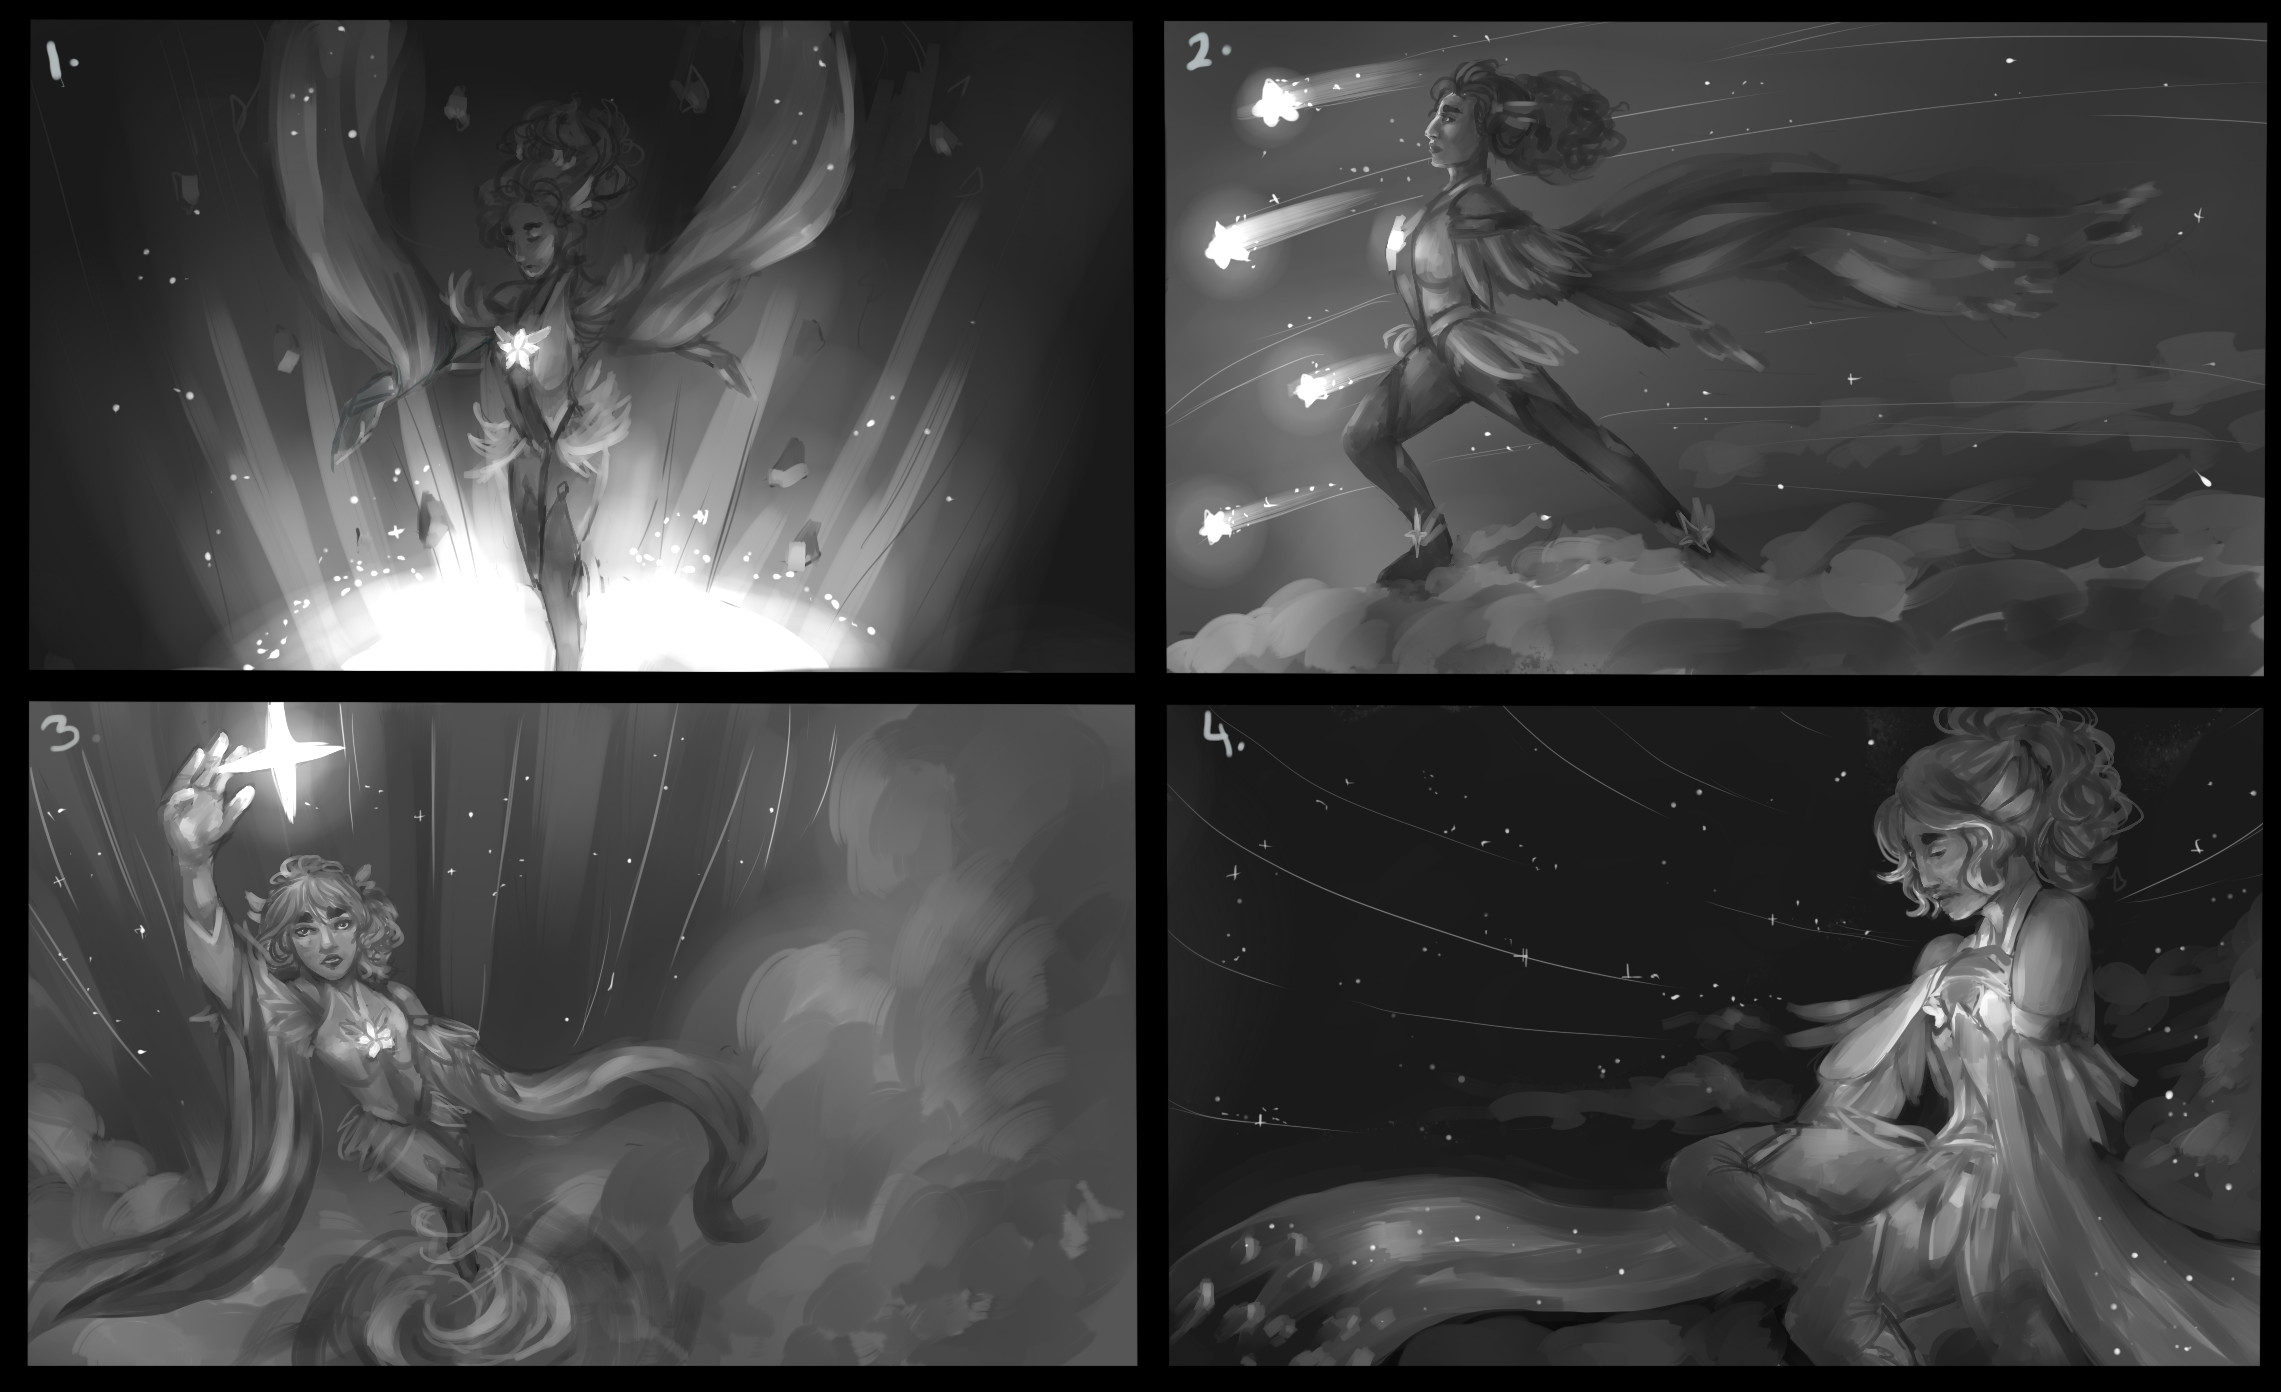 Splash art concepts